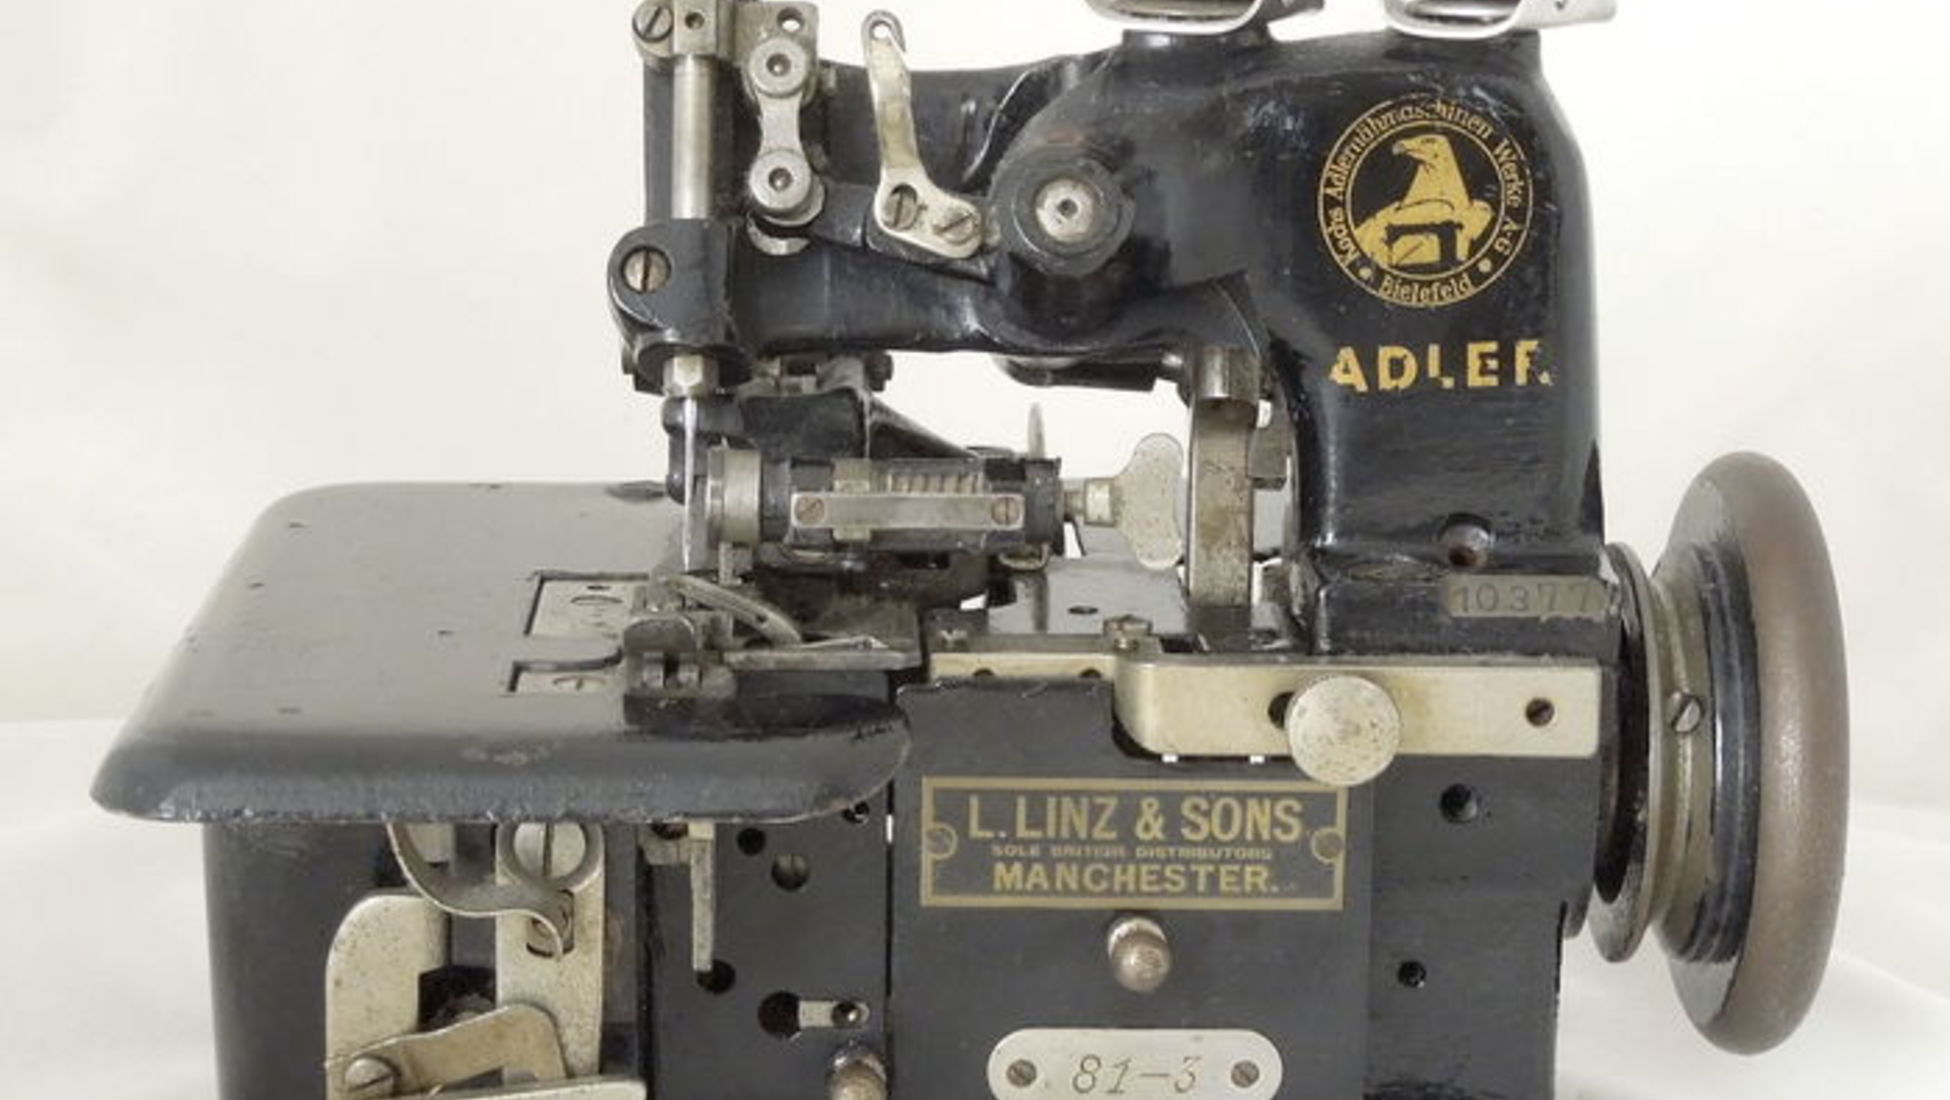 How To Determine The Value Of Your Old Sewing Machine Catawiki Kenmore Model 12 Threading Diagram Valuable Machines At It Can Be Useful Understand What Sells Well Auction Take A Look Five Most Expensive